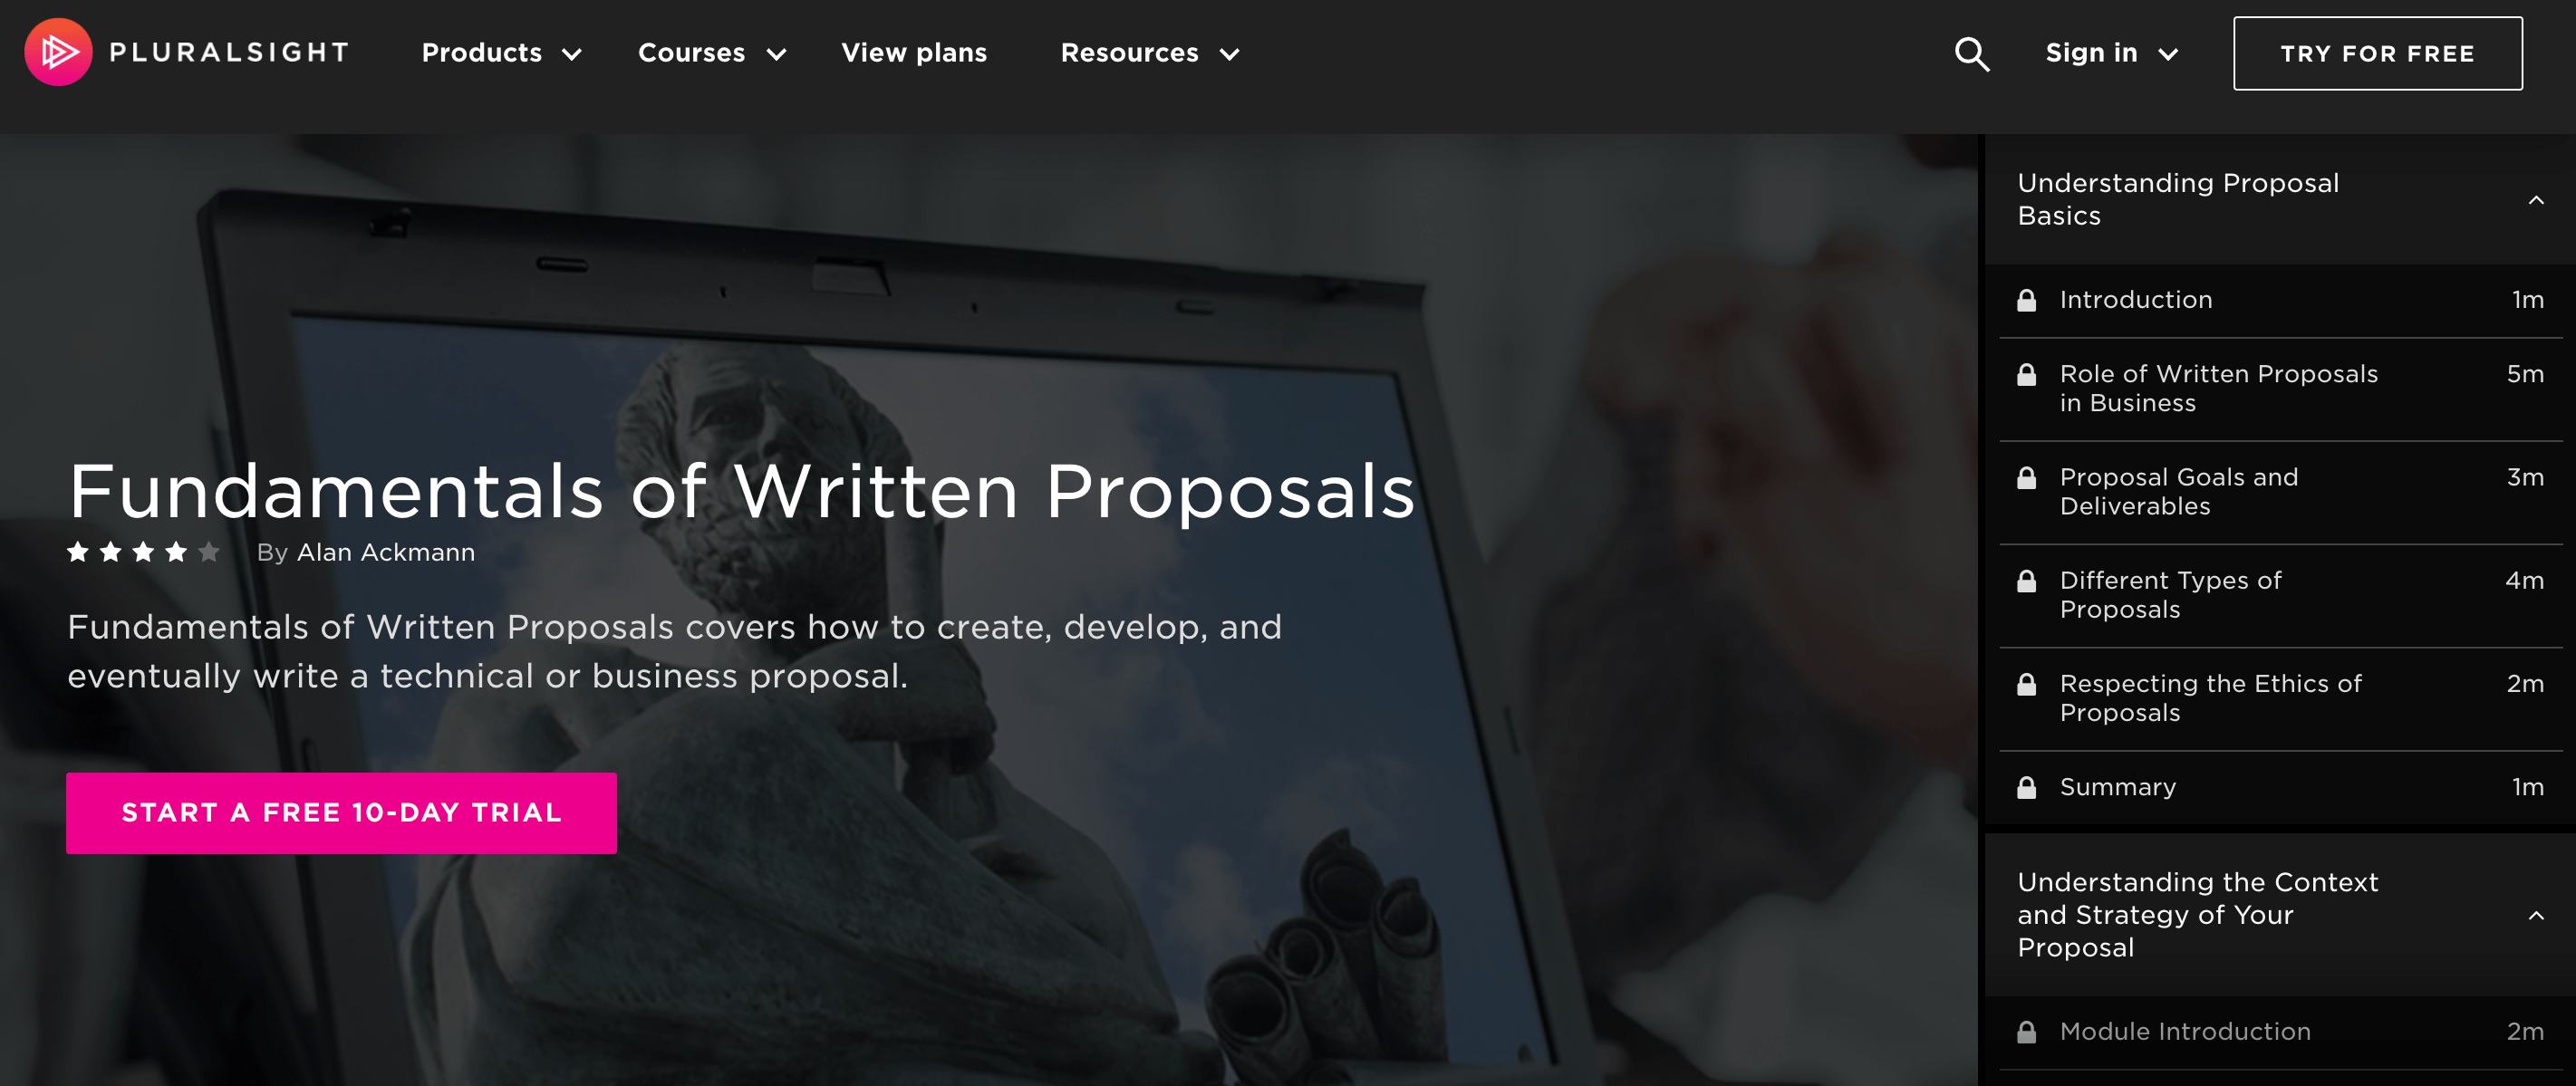 Fundamentals-of-Written-Proposals-Pluralsight